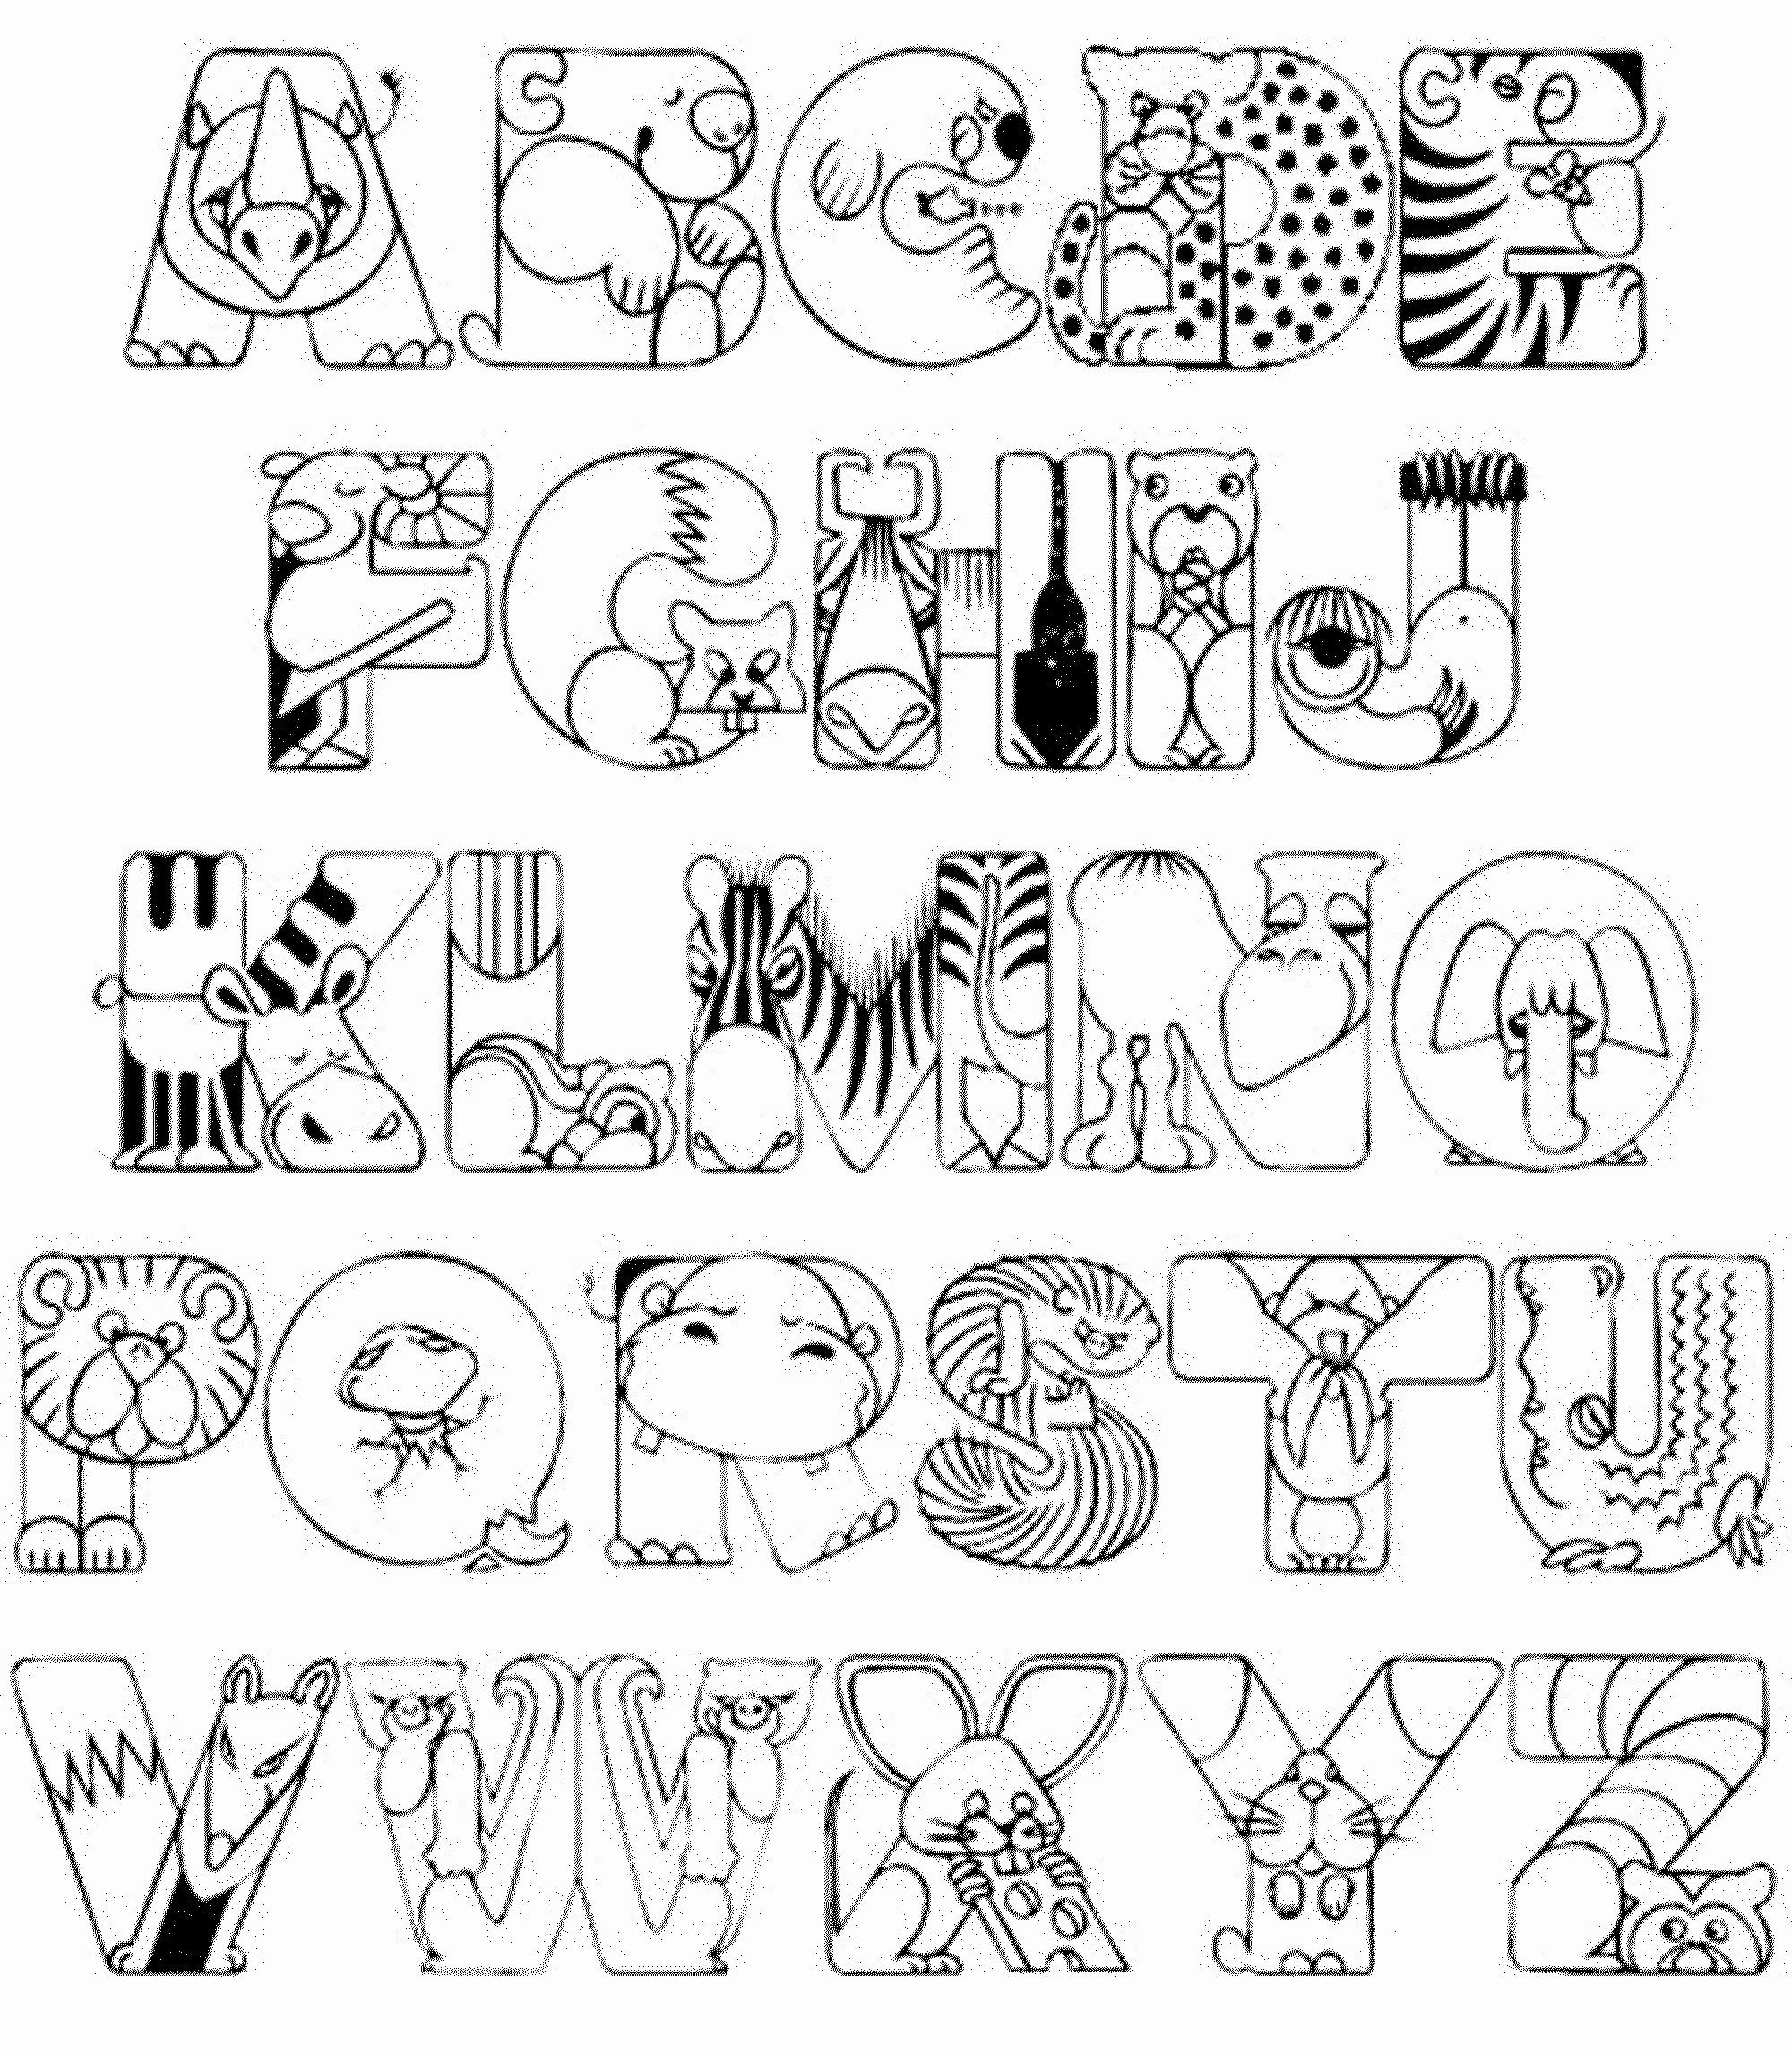 Alphabet Coloring Book Printable Pdf Free Luxury Alphabet Coloring Pages Pdf Kindergarten Coloring Pages Abc Coloring Pages Abc Coloring